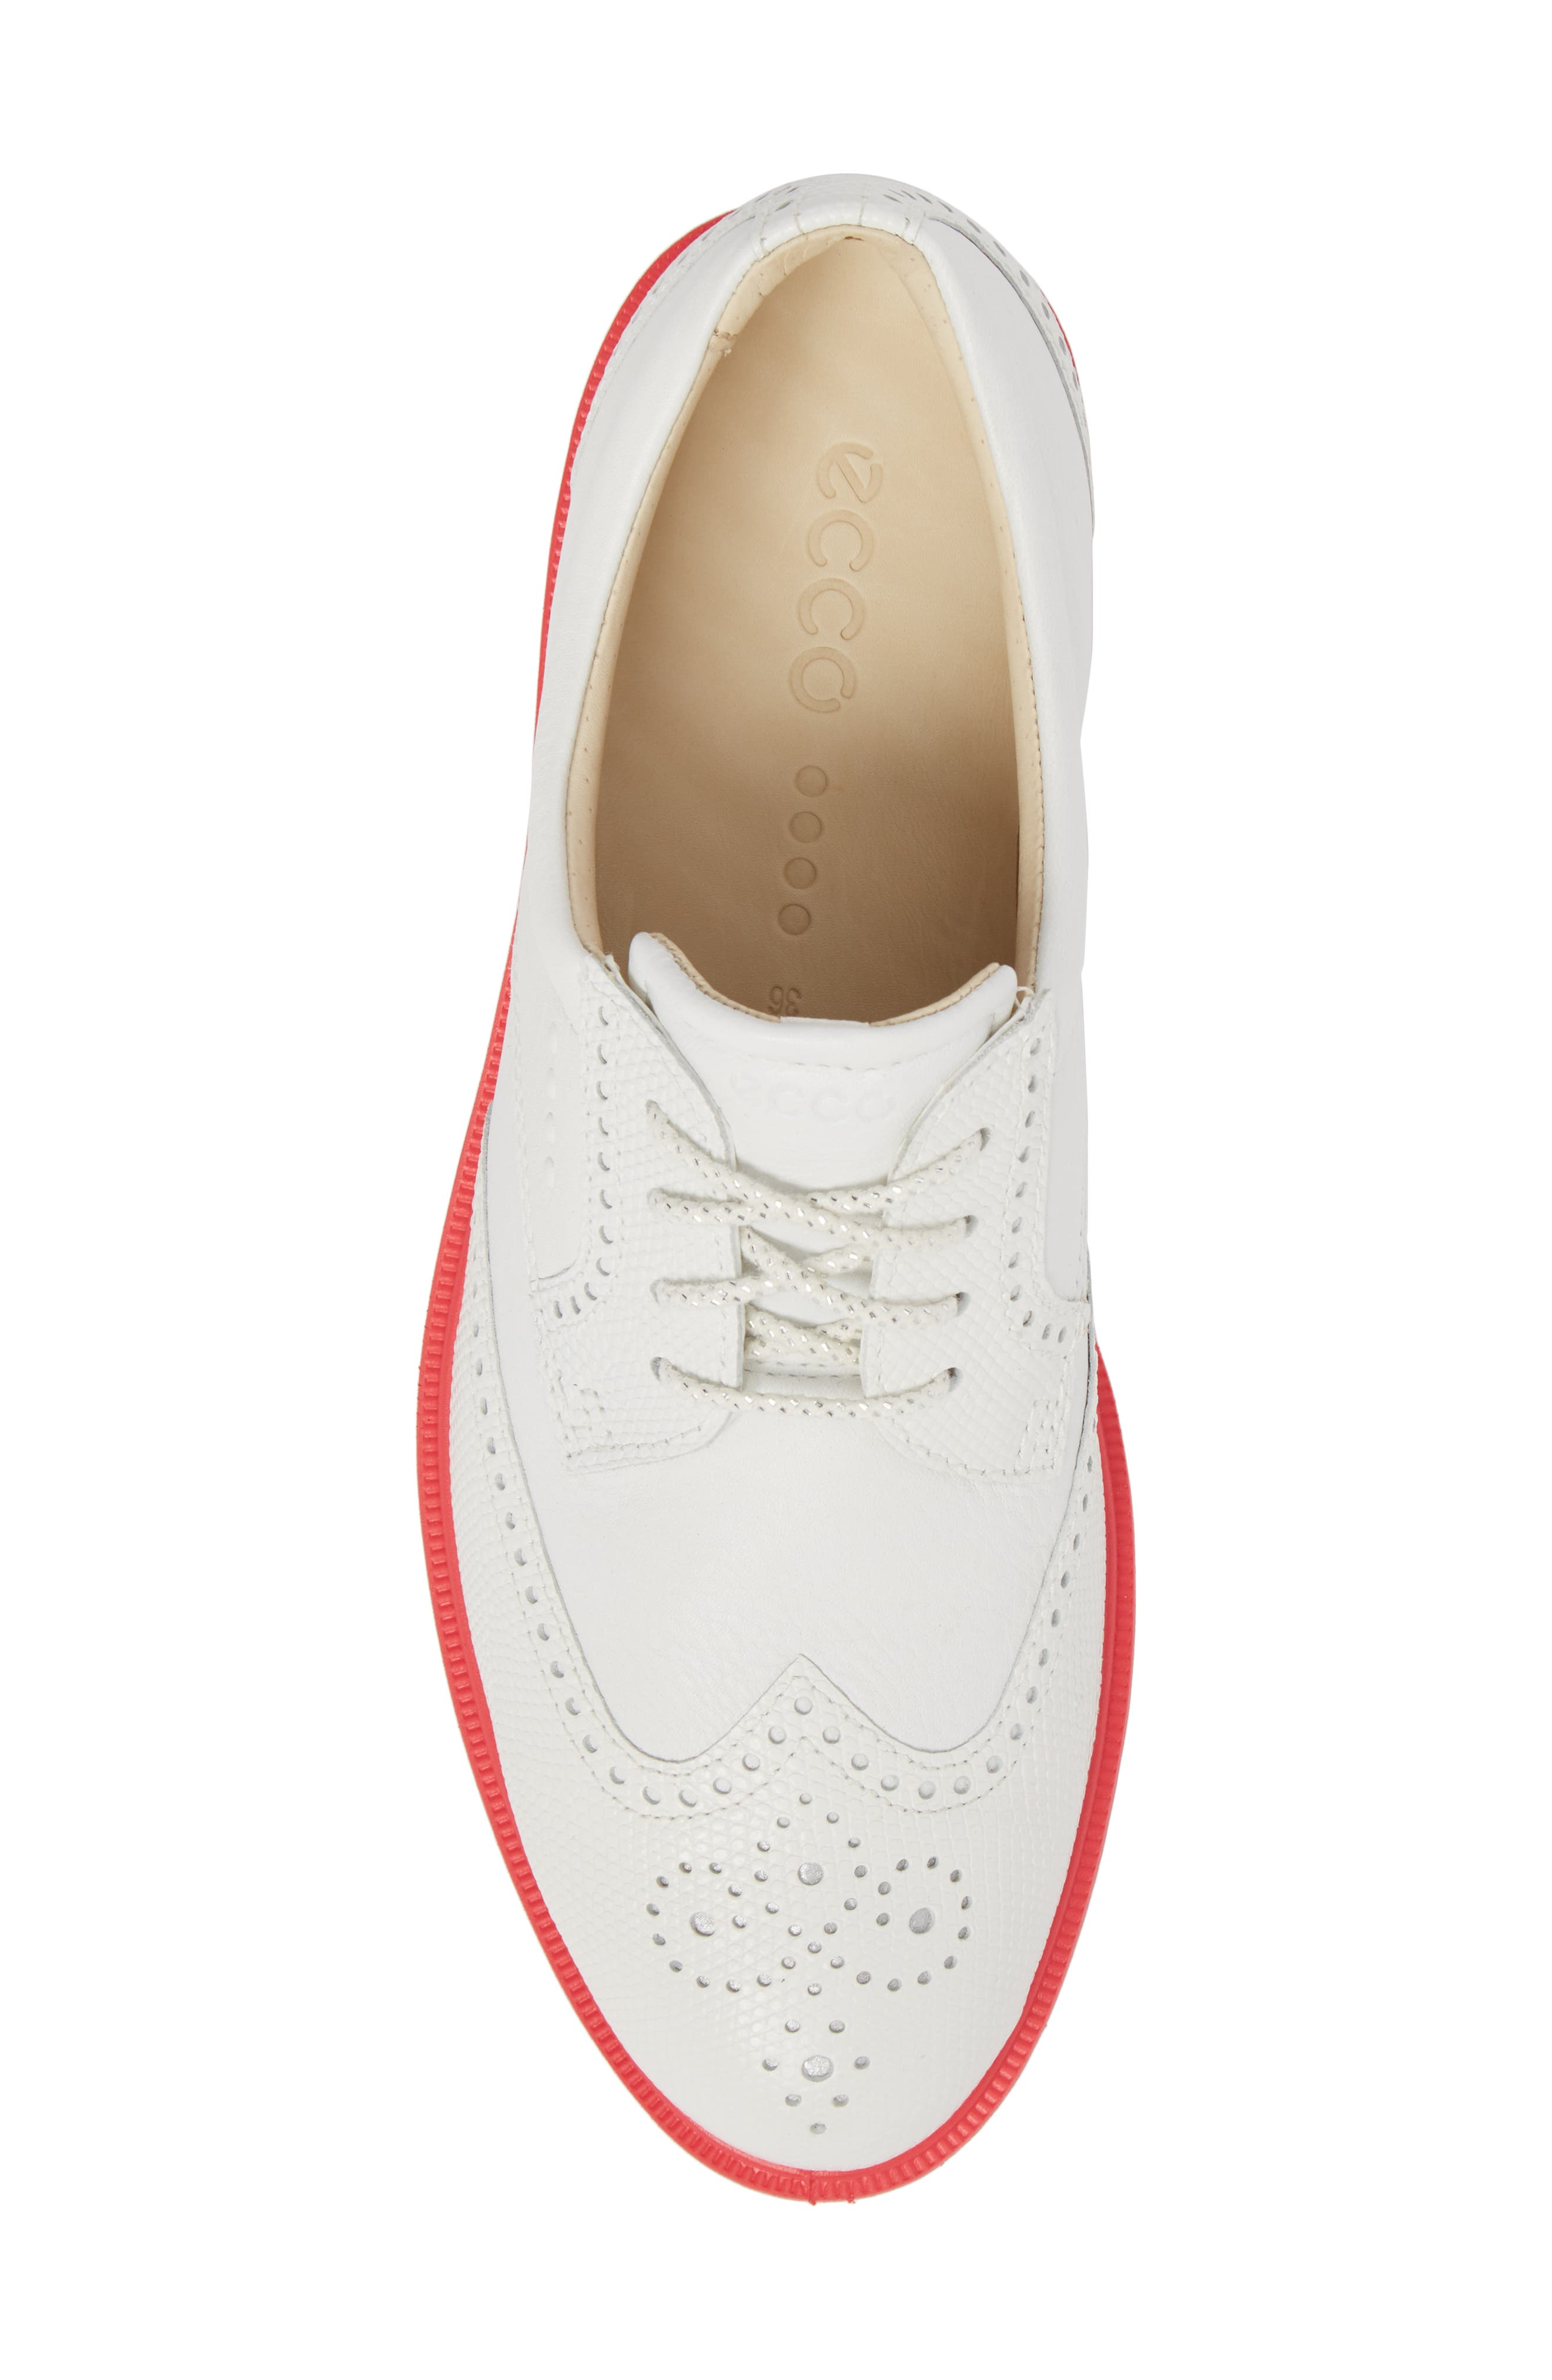 'Tour' Hybrid Wingtip Golf Shoe,                             Alternate thumbnail 5, color,                             WHITE LEATHER/ RED